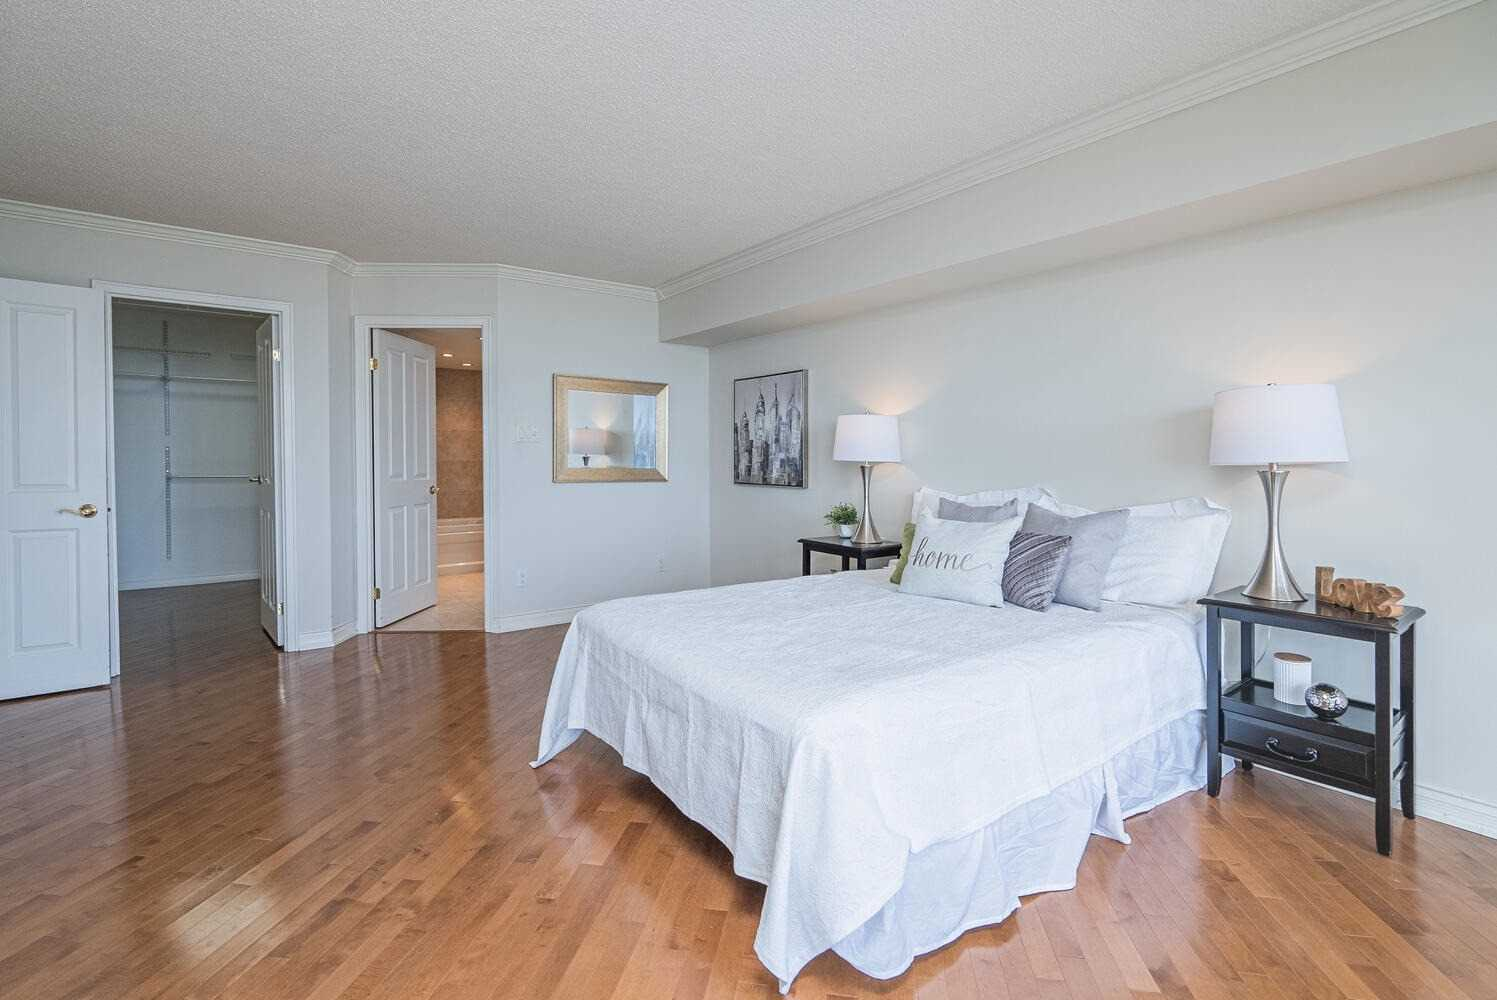 Image 10 of 38 showing inside of 2 Bedroom Condo Apt Apartment for Sale at 70 Cumberland Lane Unit# 503, Ajax L1S7K4